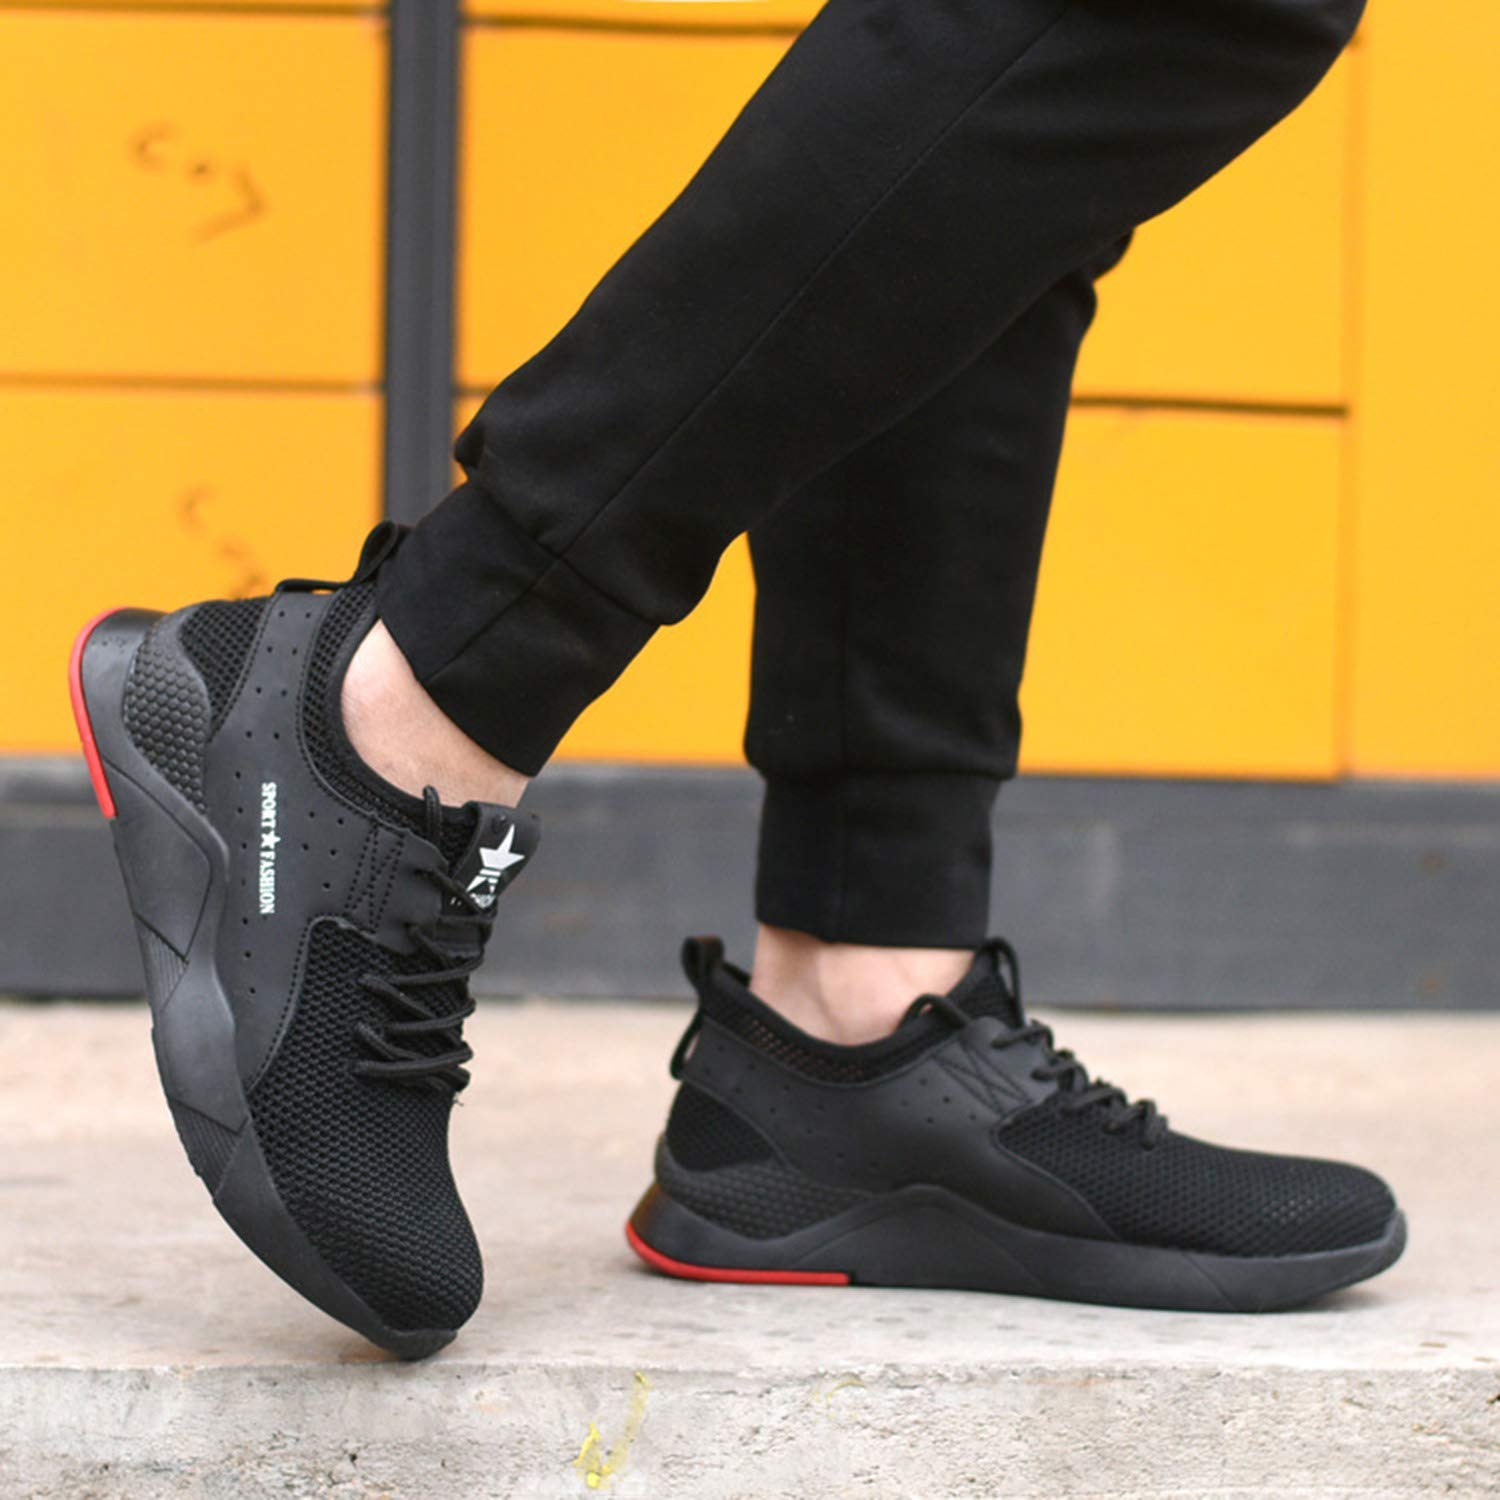 Hu.S.Ye Summer Safety Shoes Men Women Steel Toe Caps Work Shoes Lightweight Construction Industrial Shoes Summer Outdoor Sport Trainers